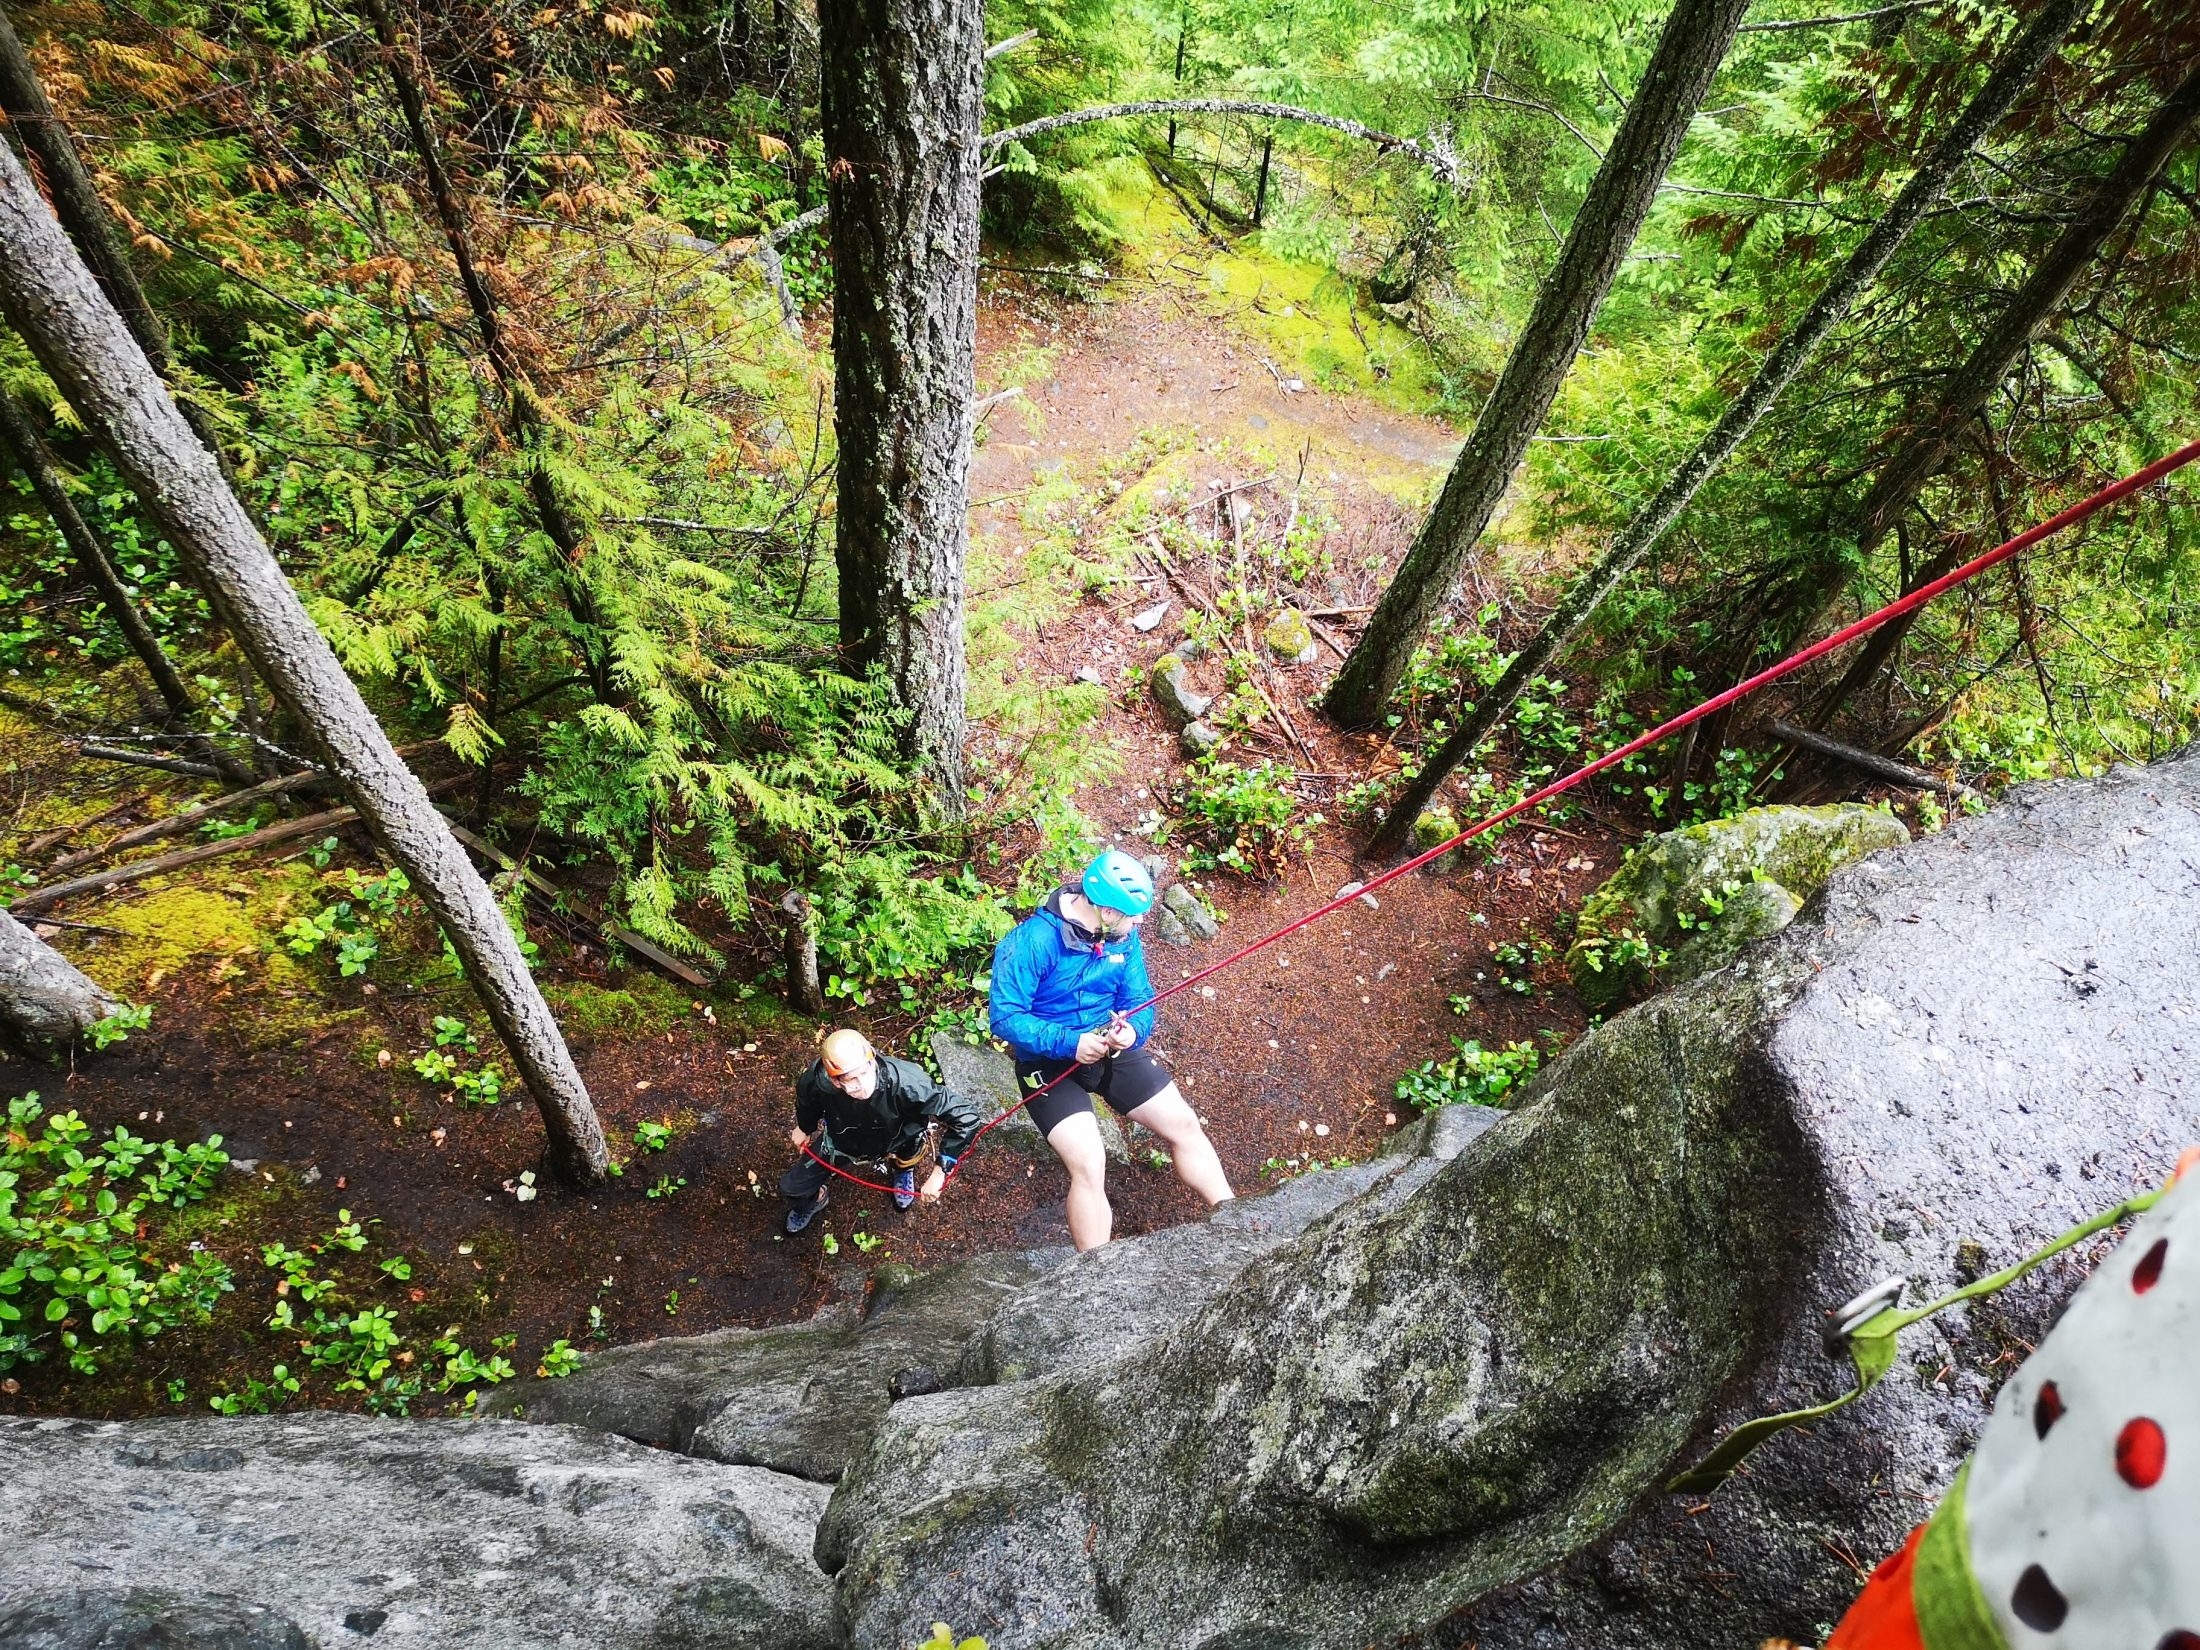 A Person Rappelling On A Dry Rock In A Wooded Area